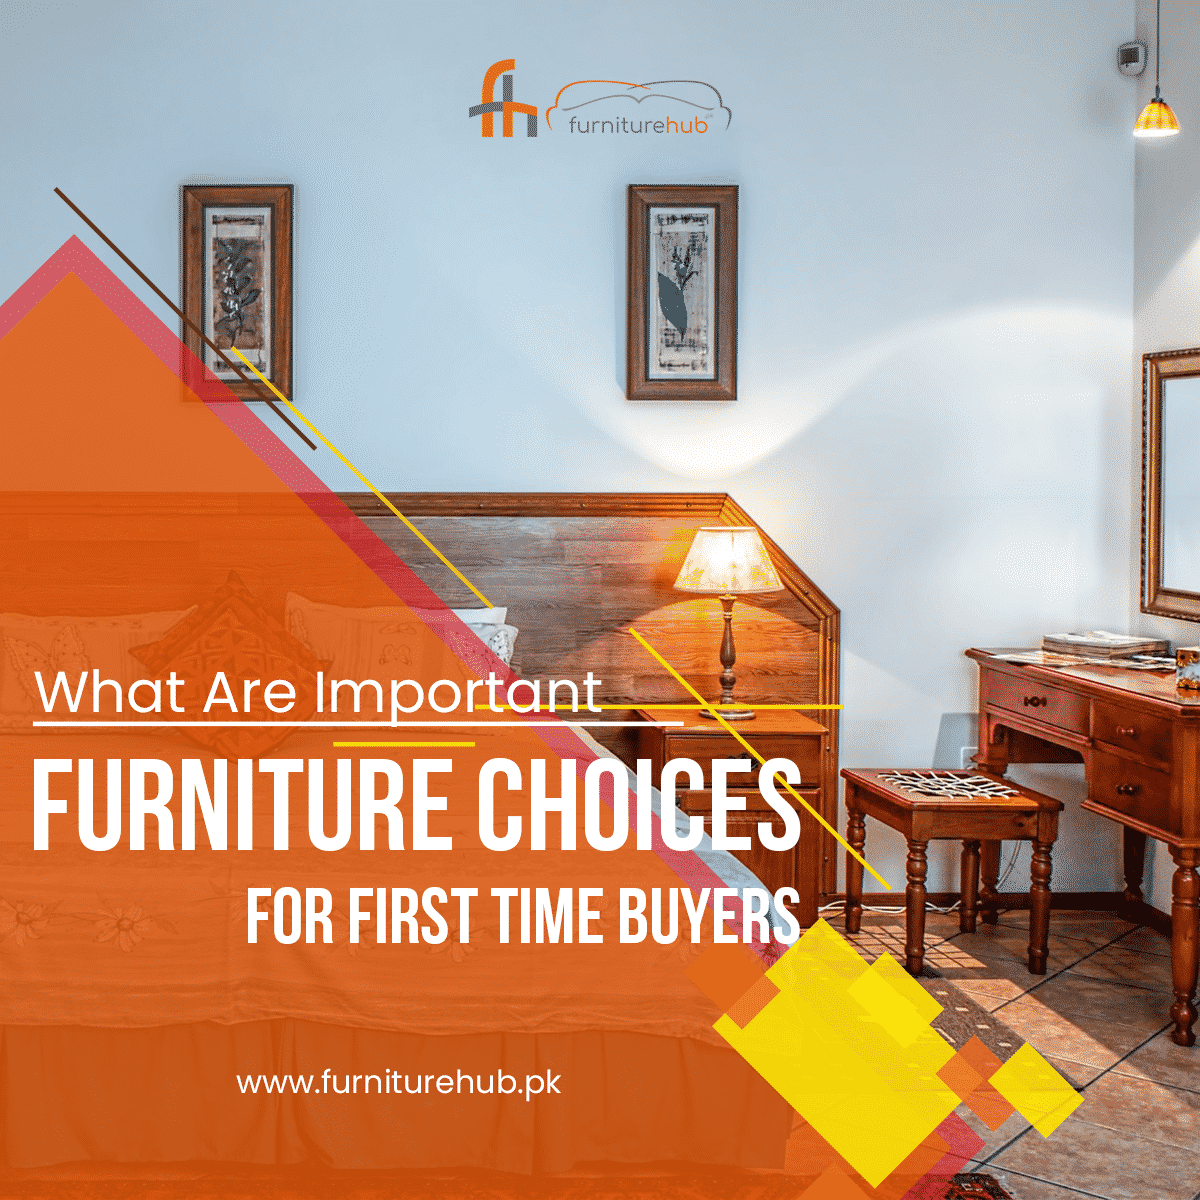 What Are Important Furniture Choices for First Time Buyers